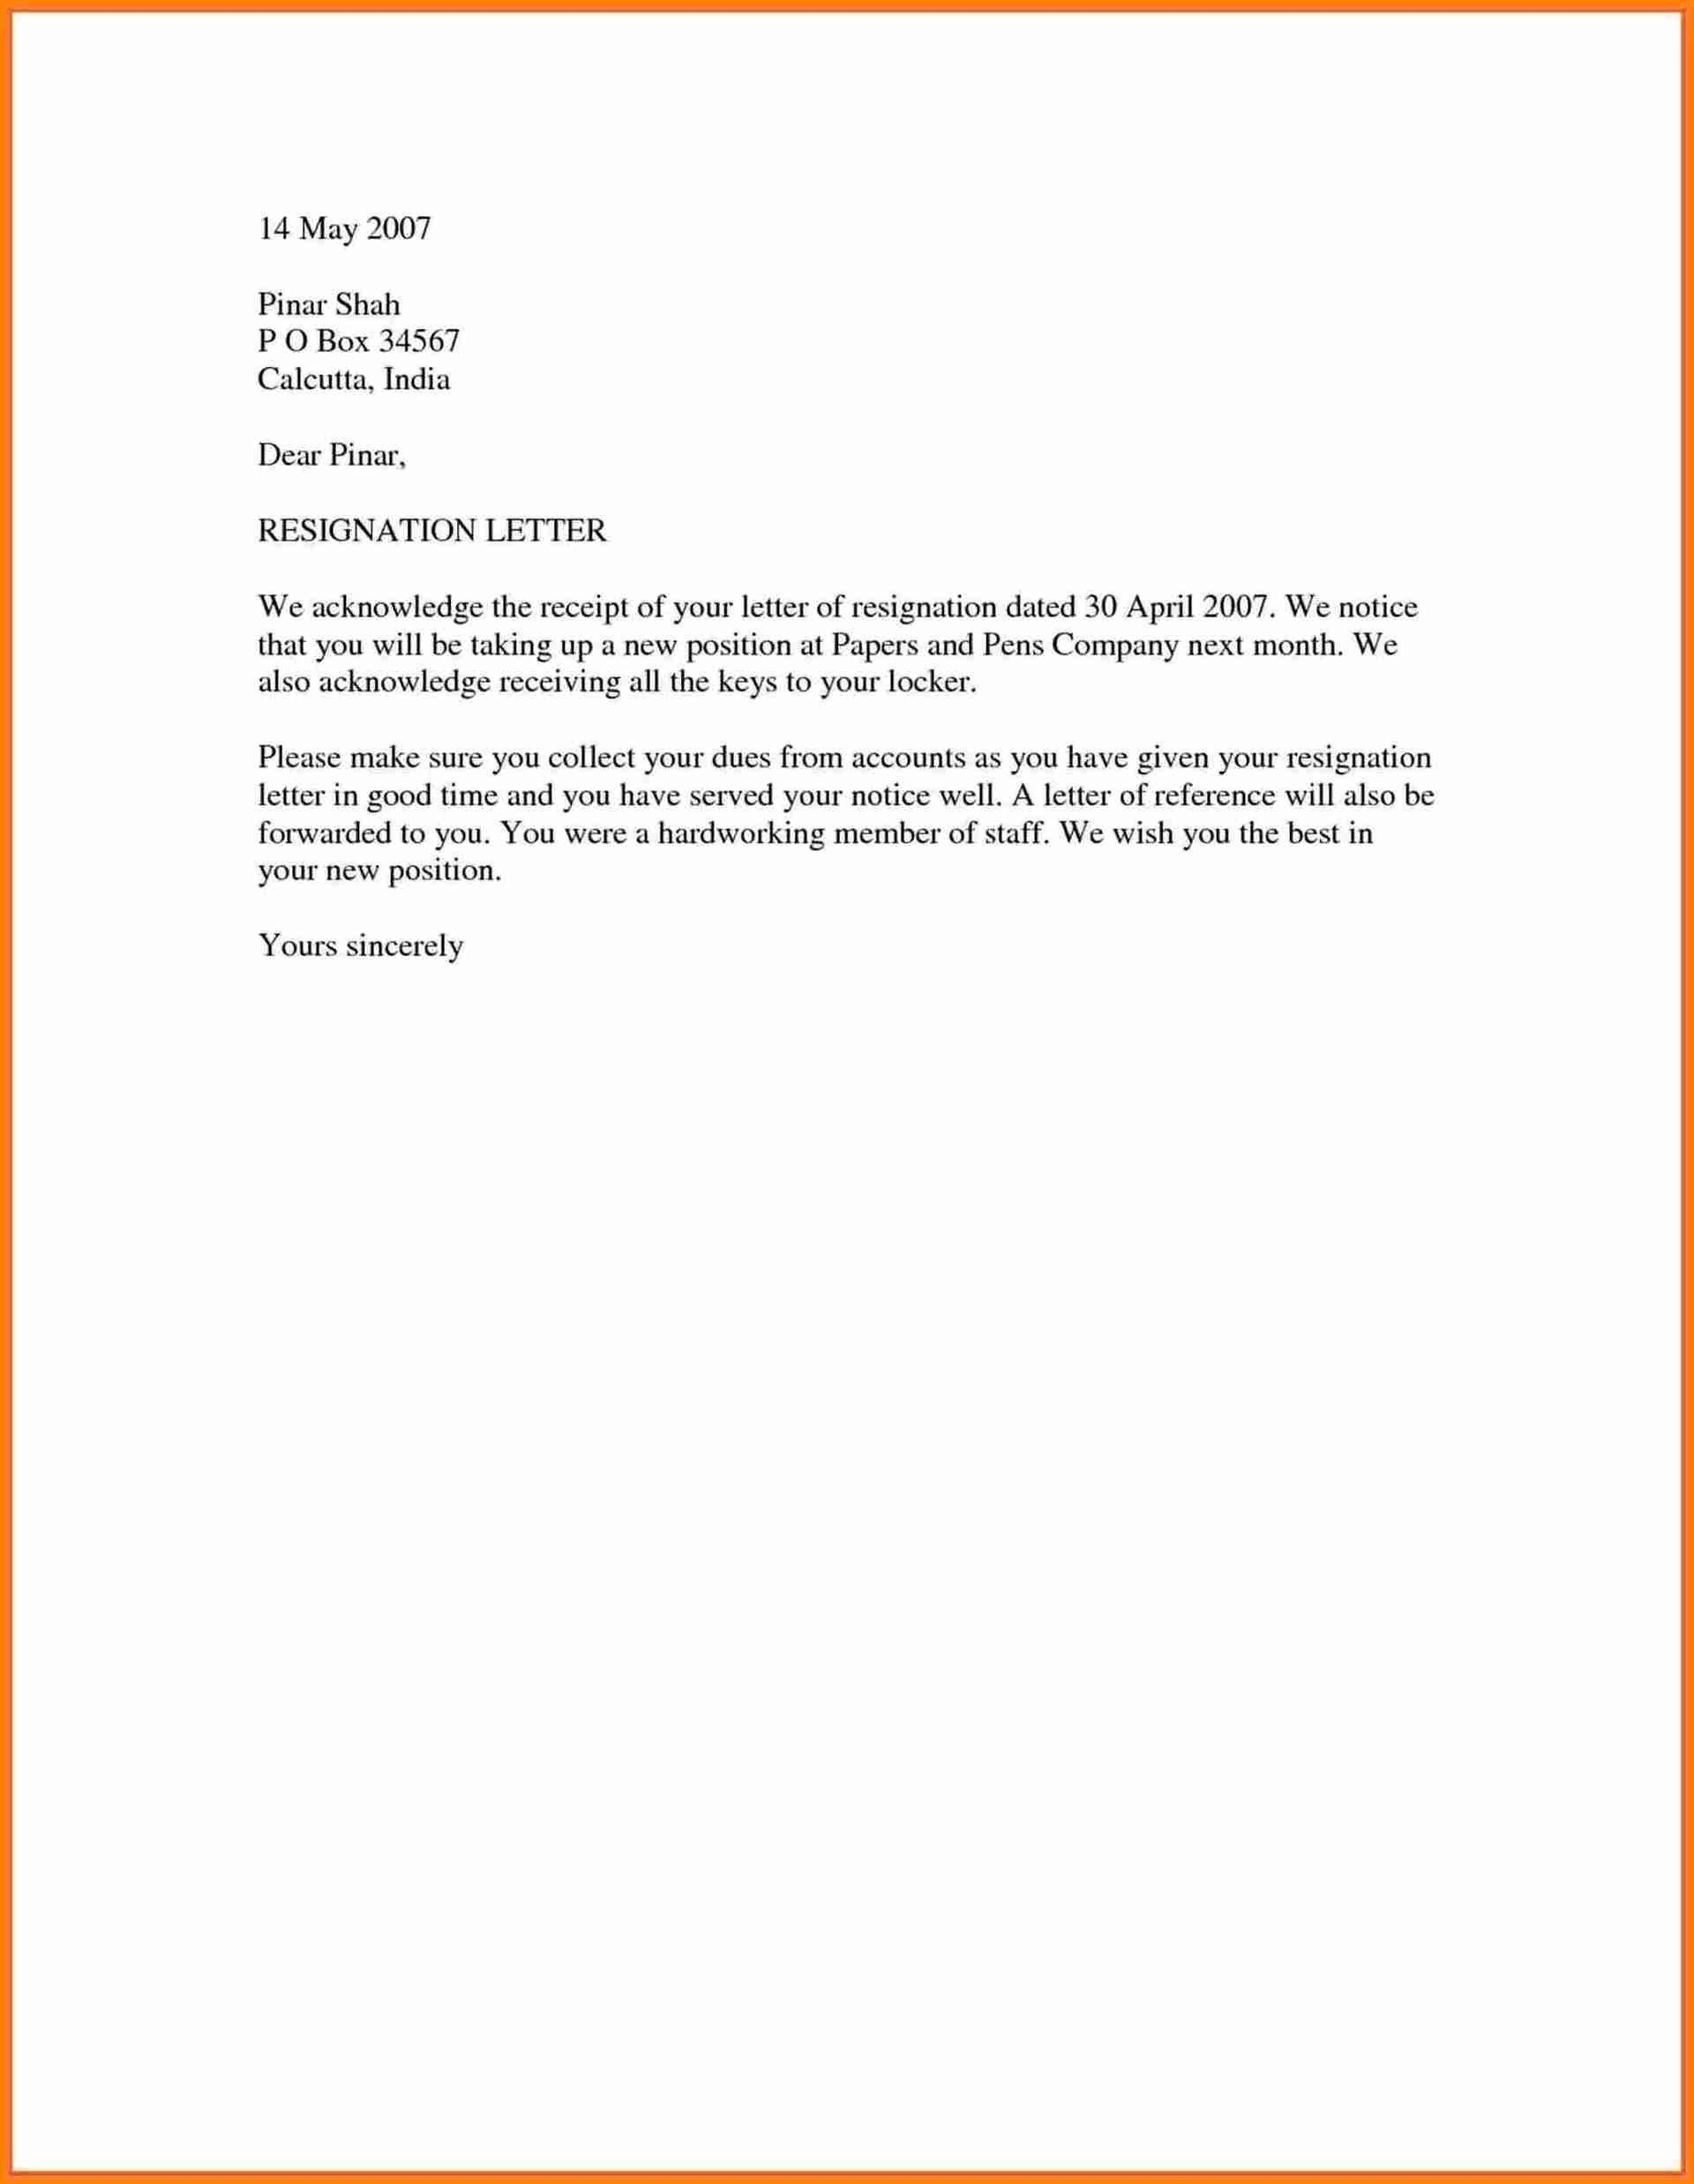 Resignation Letter Template Word Doc from www.addictionary.org